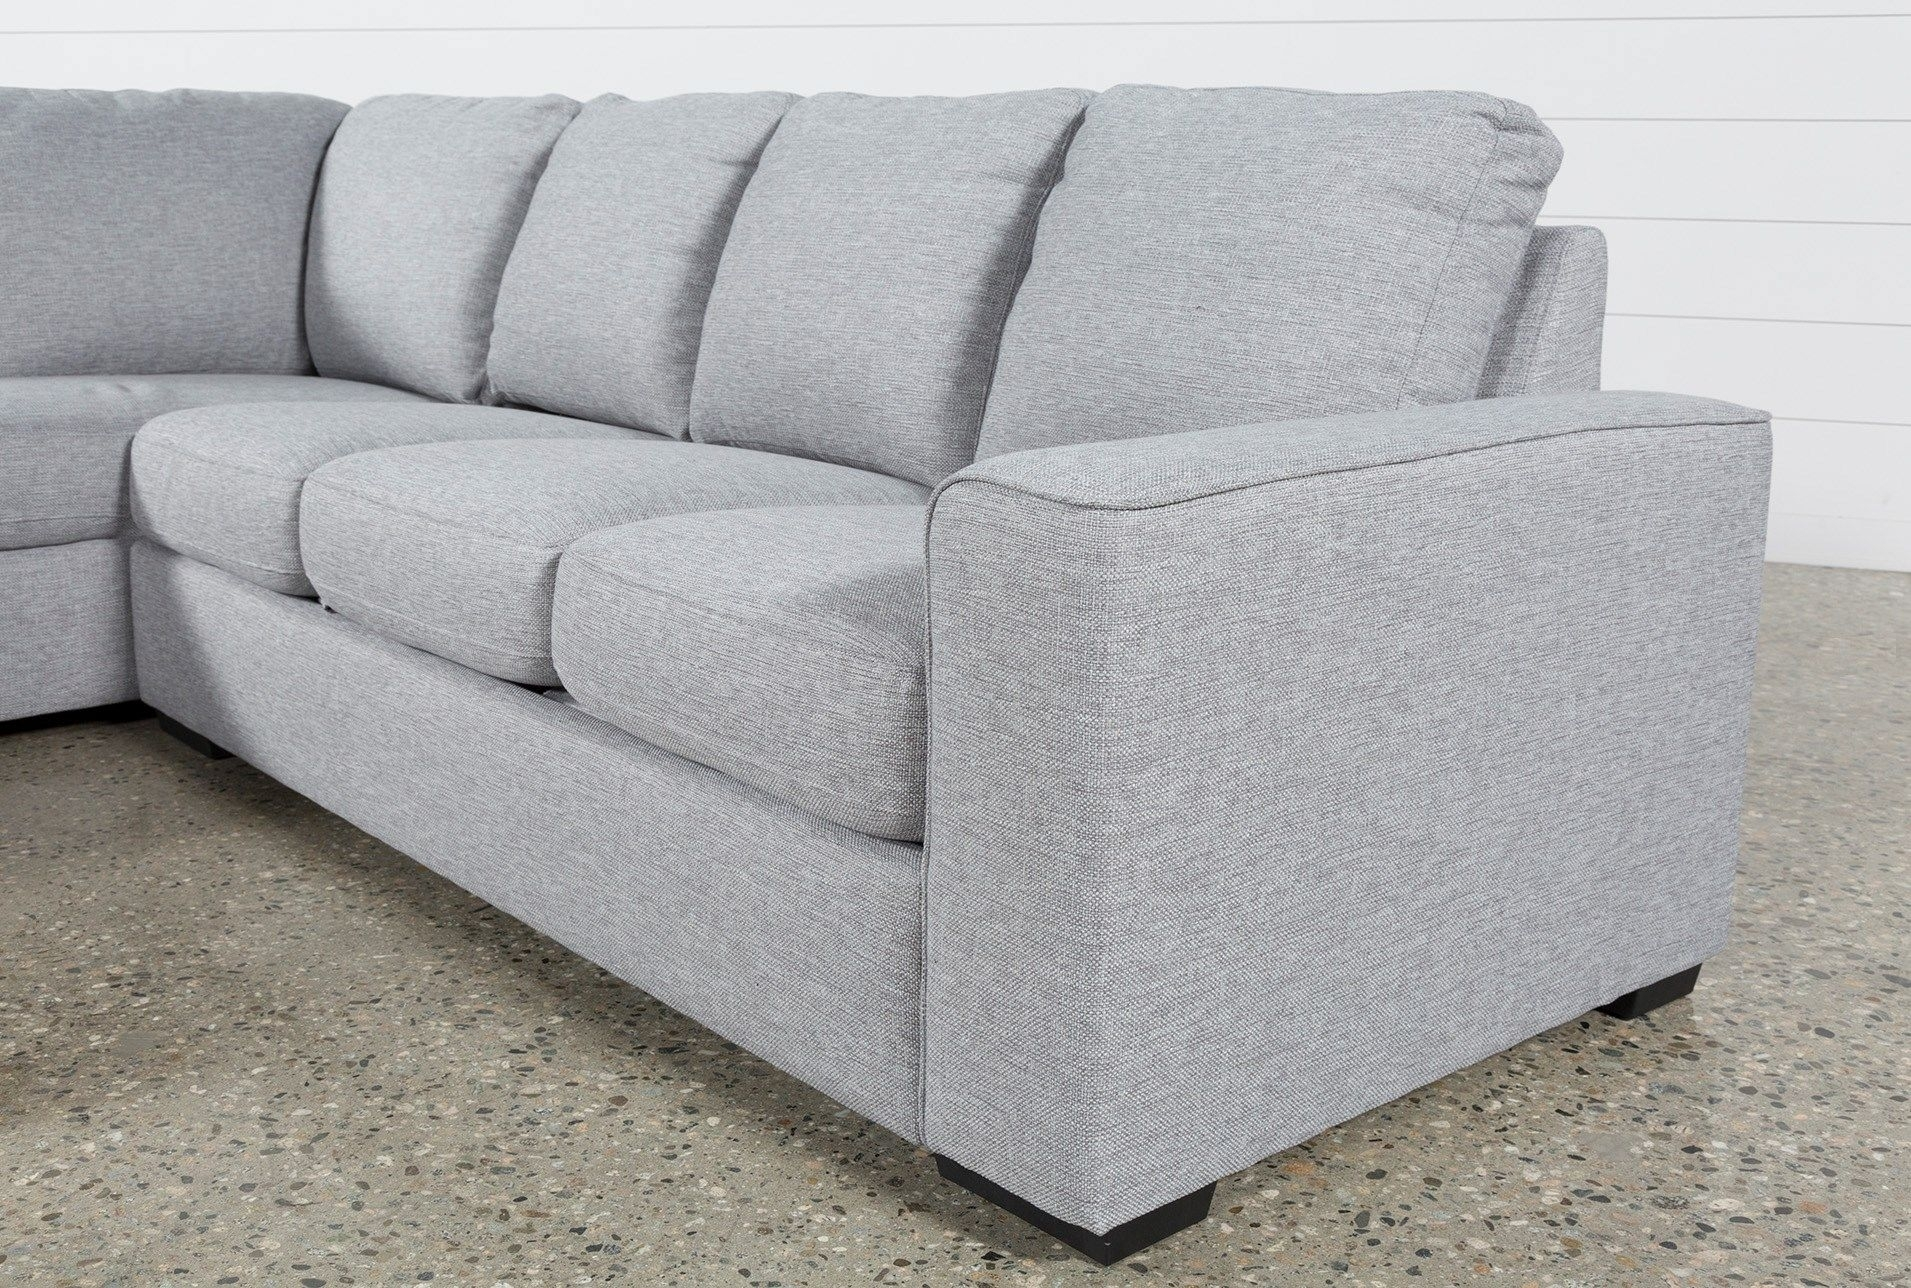 Lucy Grey 2 Piece Sectional W/laf Chaise | Gray And Room Regarding Lucy Grey 2 Piece Sectionals With Laf Chaise (View 6 of 25)